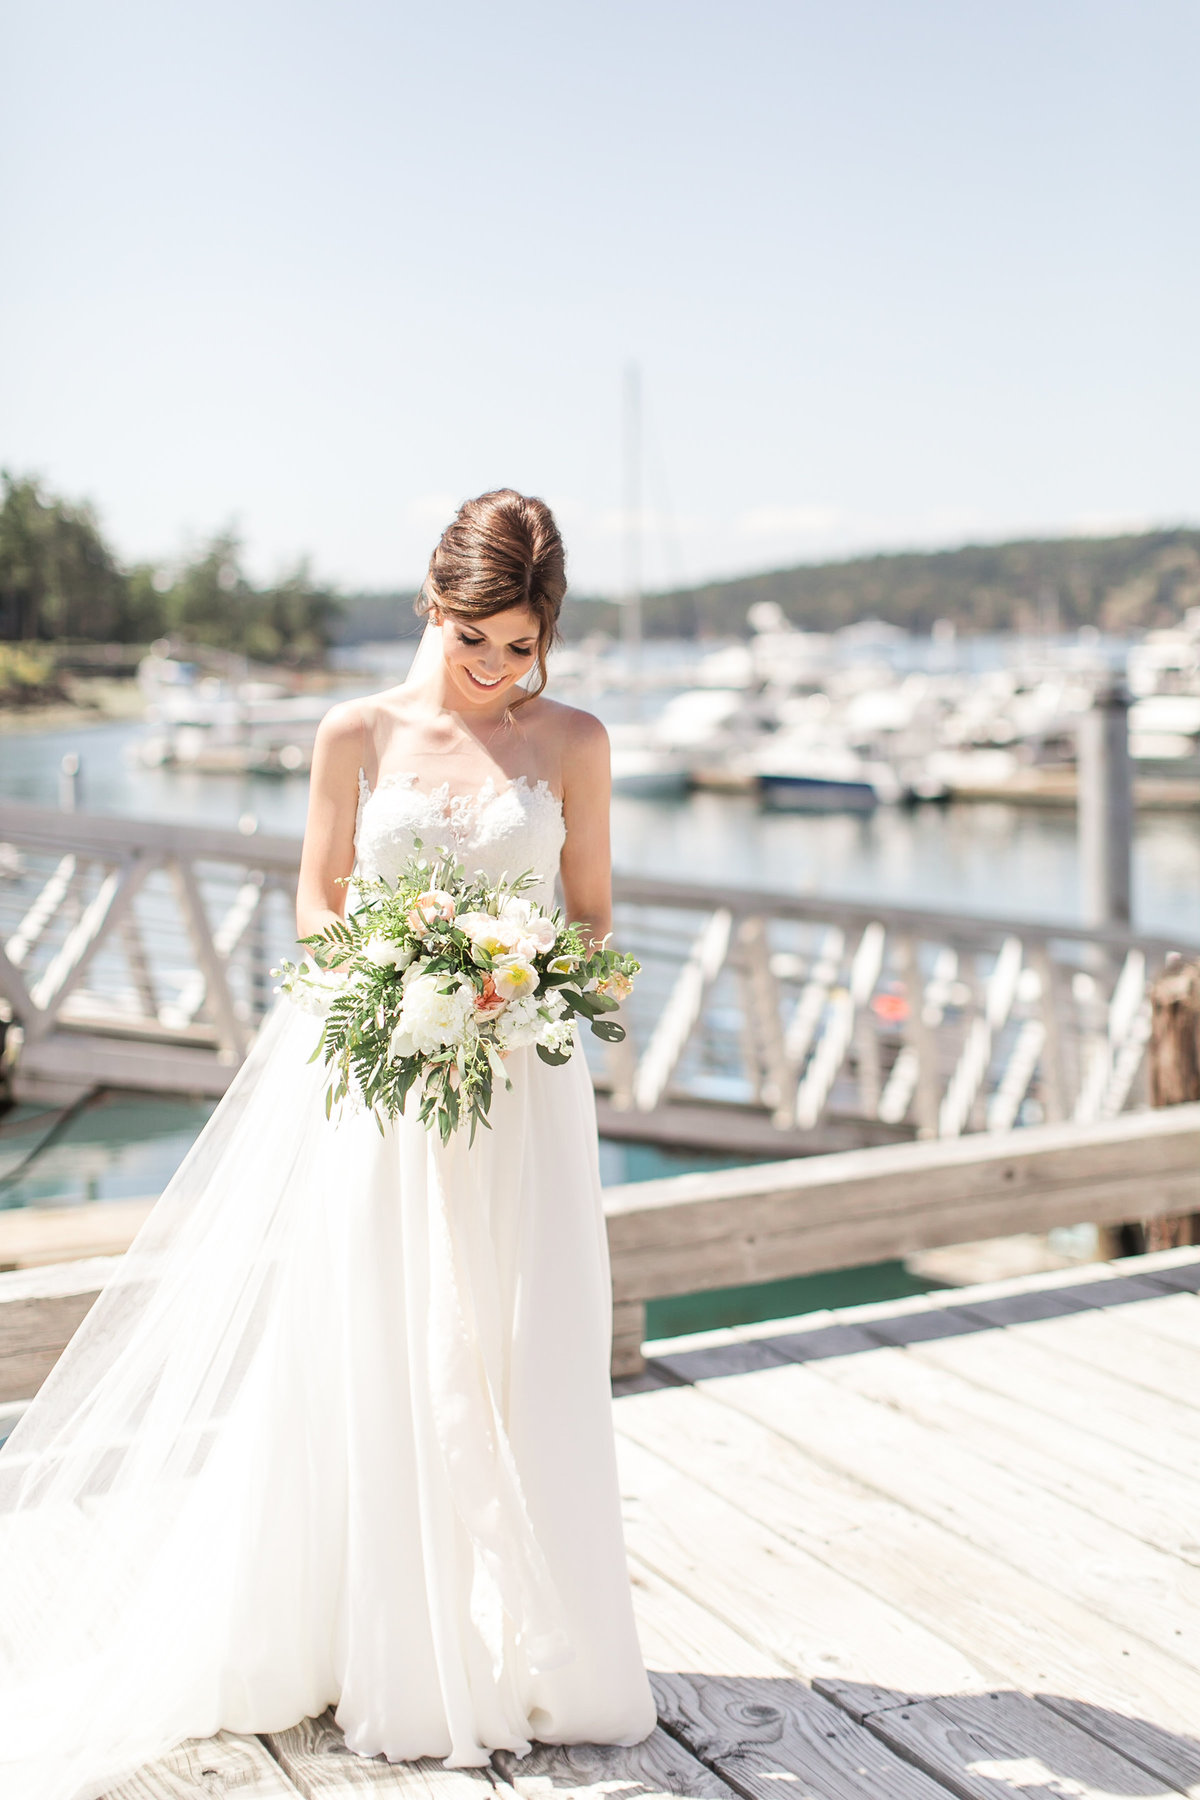 ashley-dave-roche-harbor-wedding478241